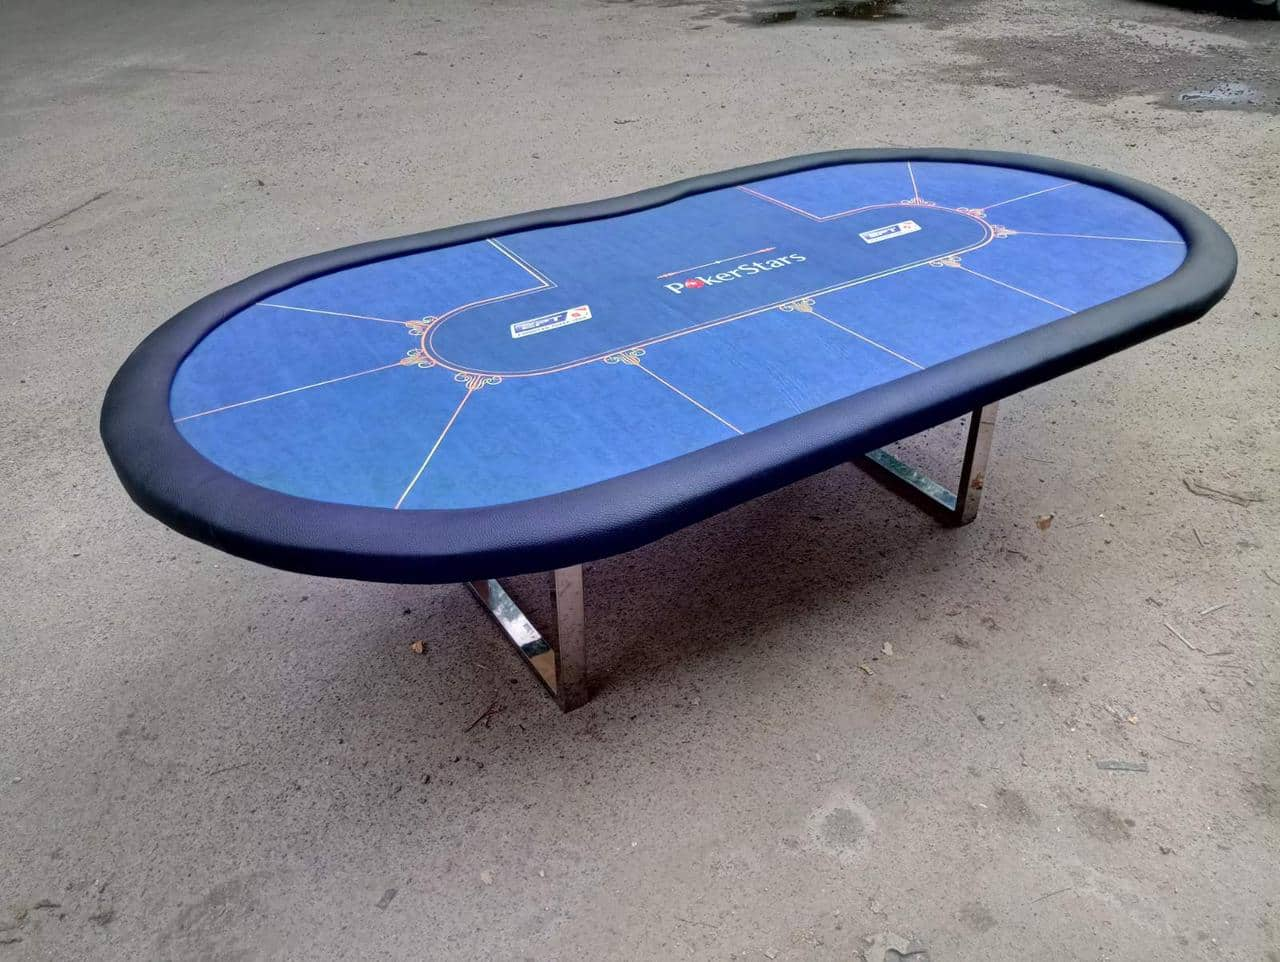 Placing Poker Tables in Small Spaces. Small table for large living room to take up less area. Folding table made of artificial materials